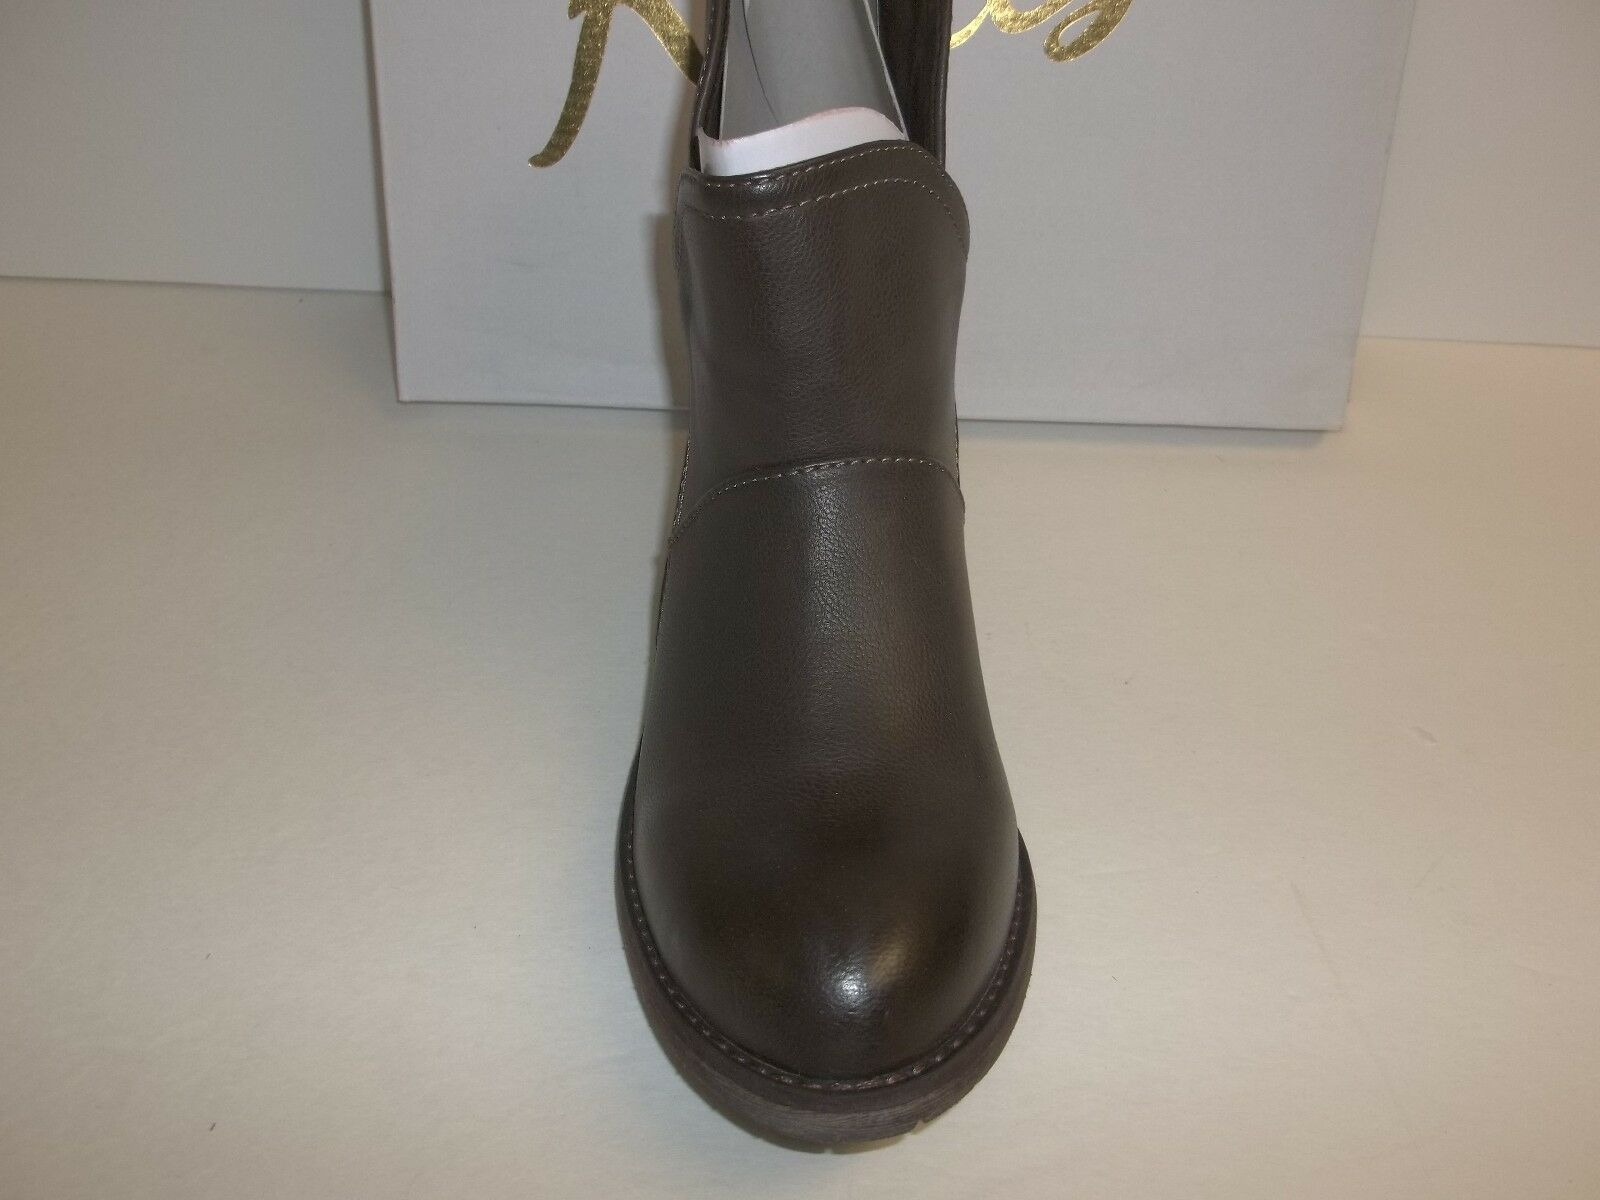 Rebels Size 8 M Ellis Taupe Brown Ankle Ankle Ankle Boots New Womens shoes e42d66